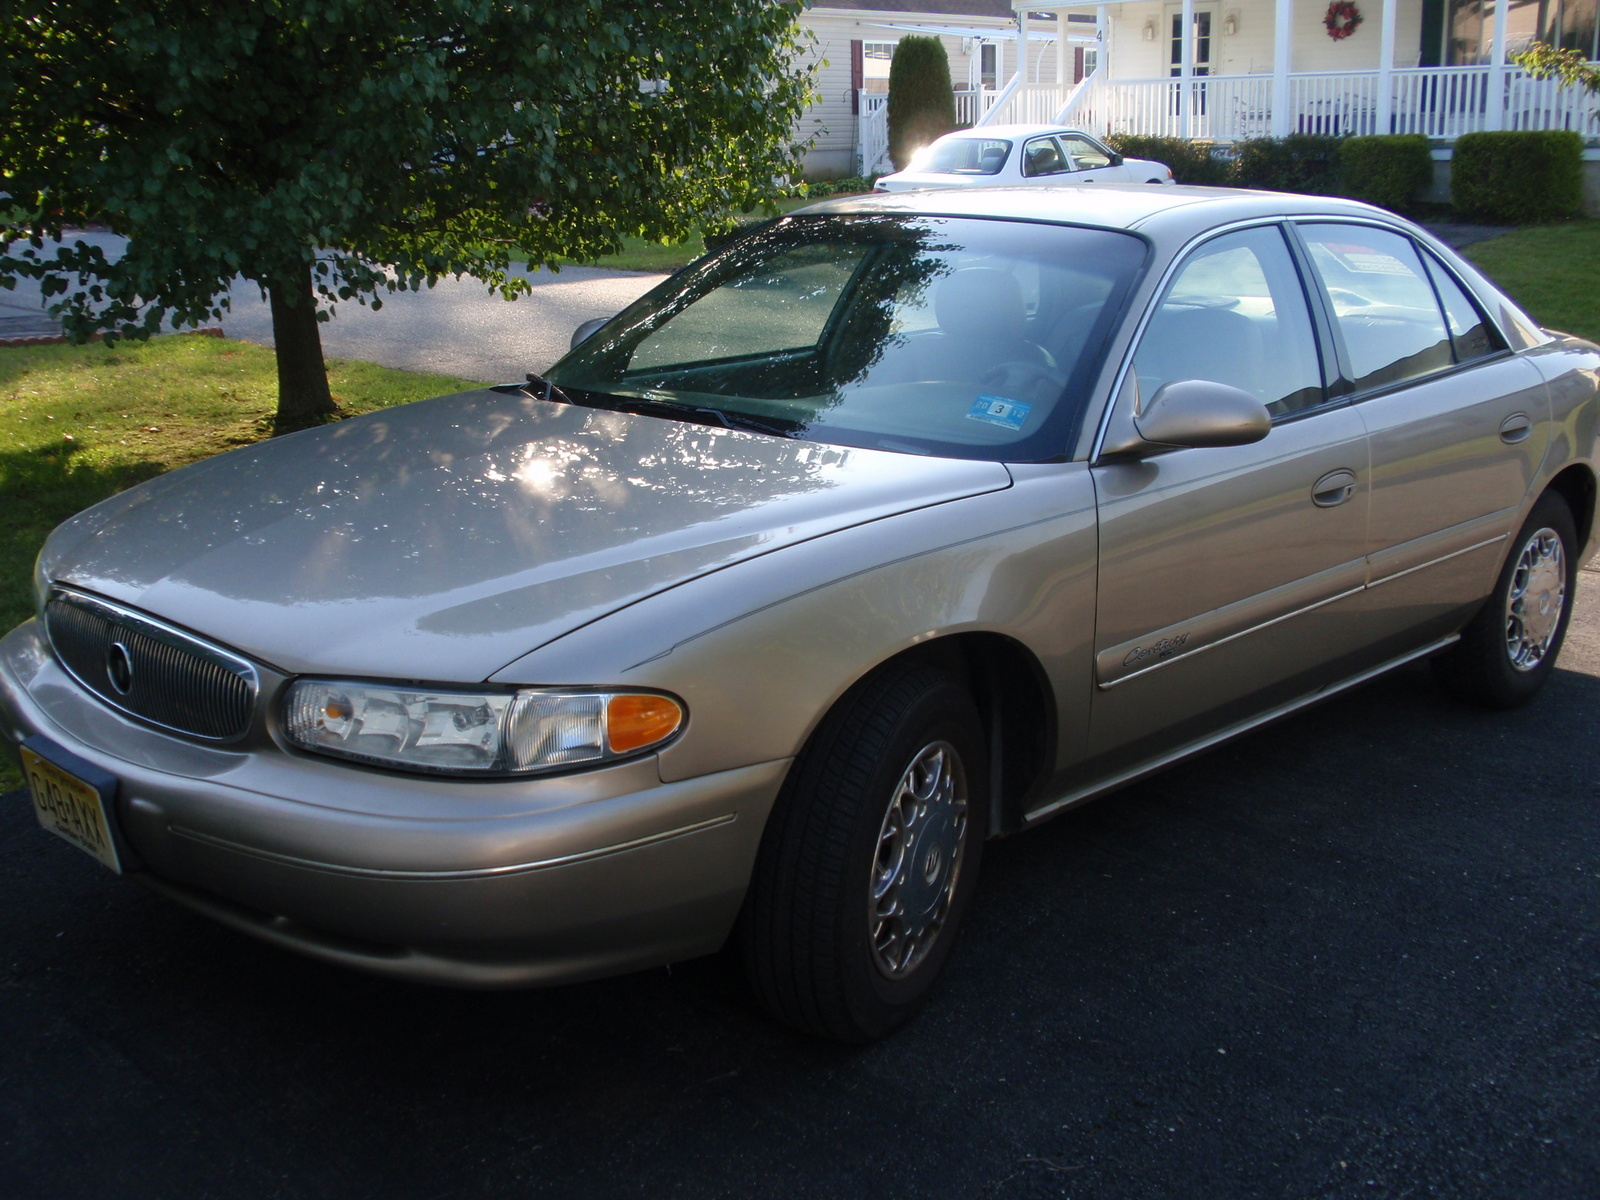 2002 Buick Century Information And Photos Momentcar